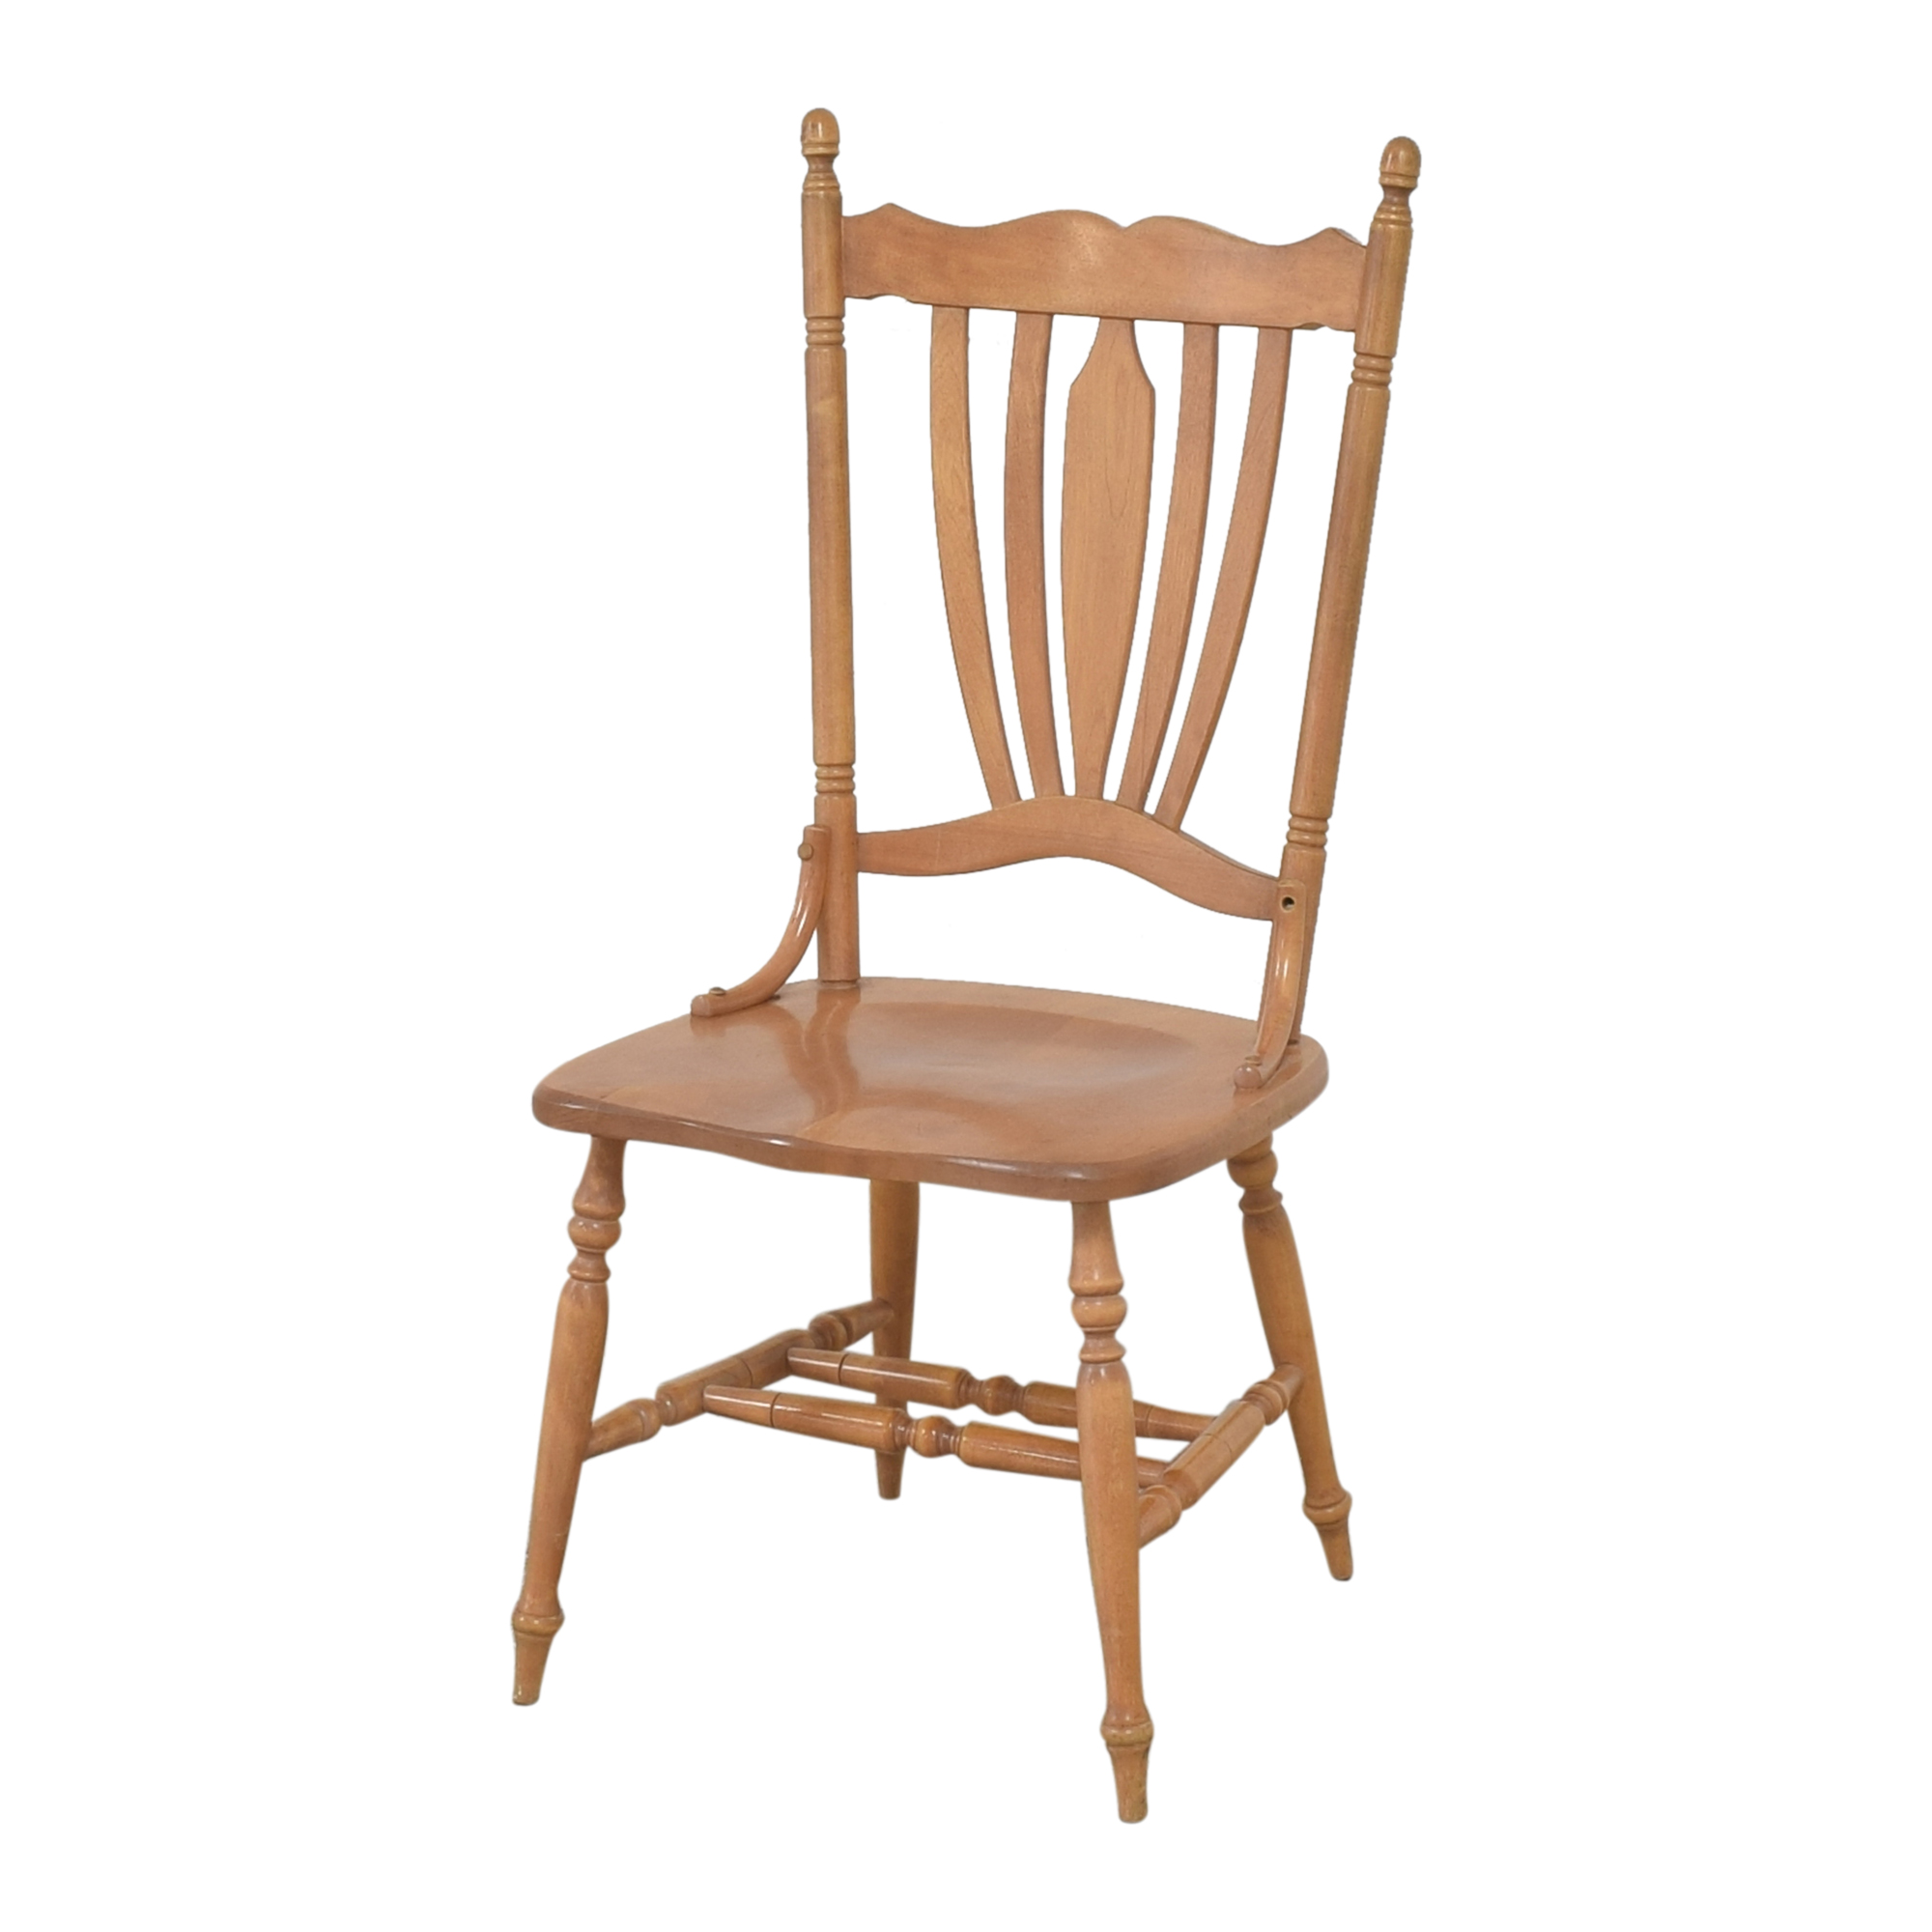 shop Canadel Rustic Dining Chairs Canadel Chairs